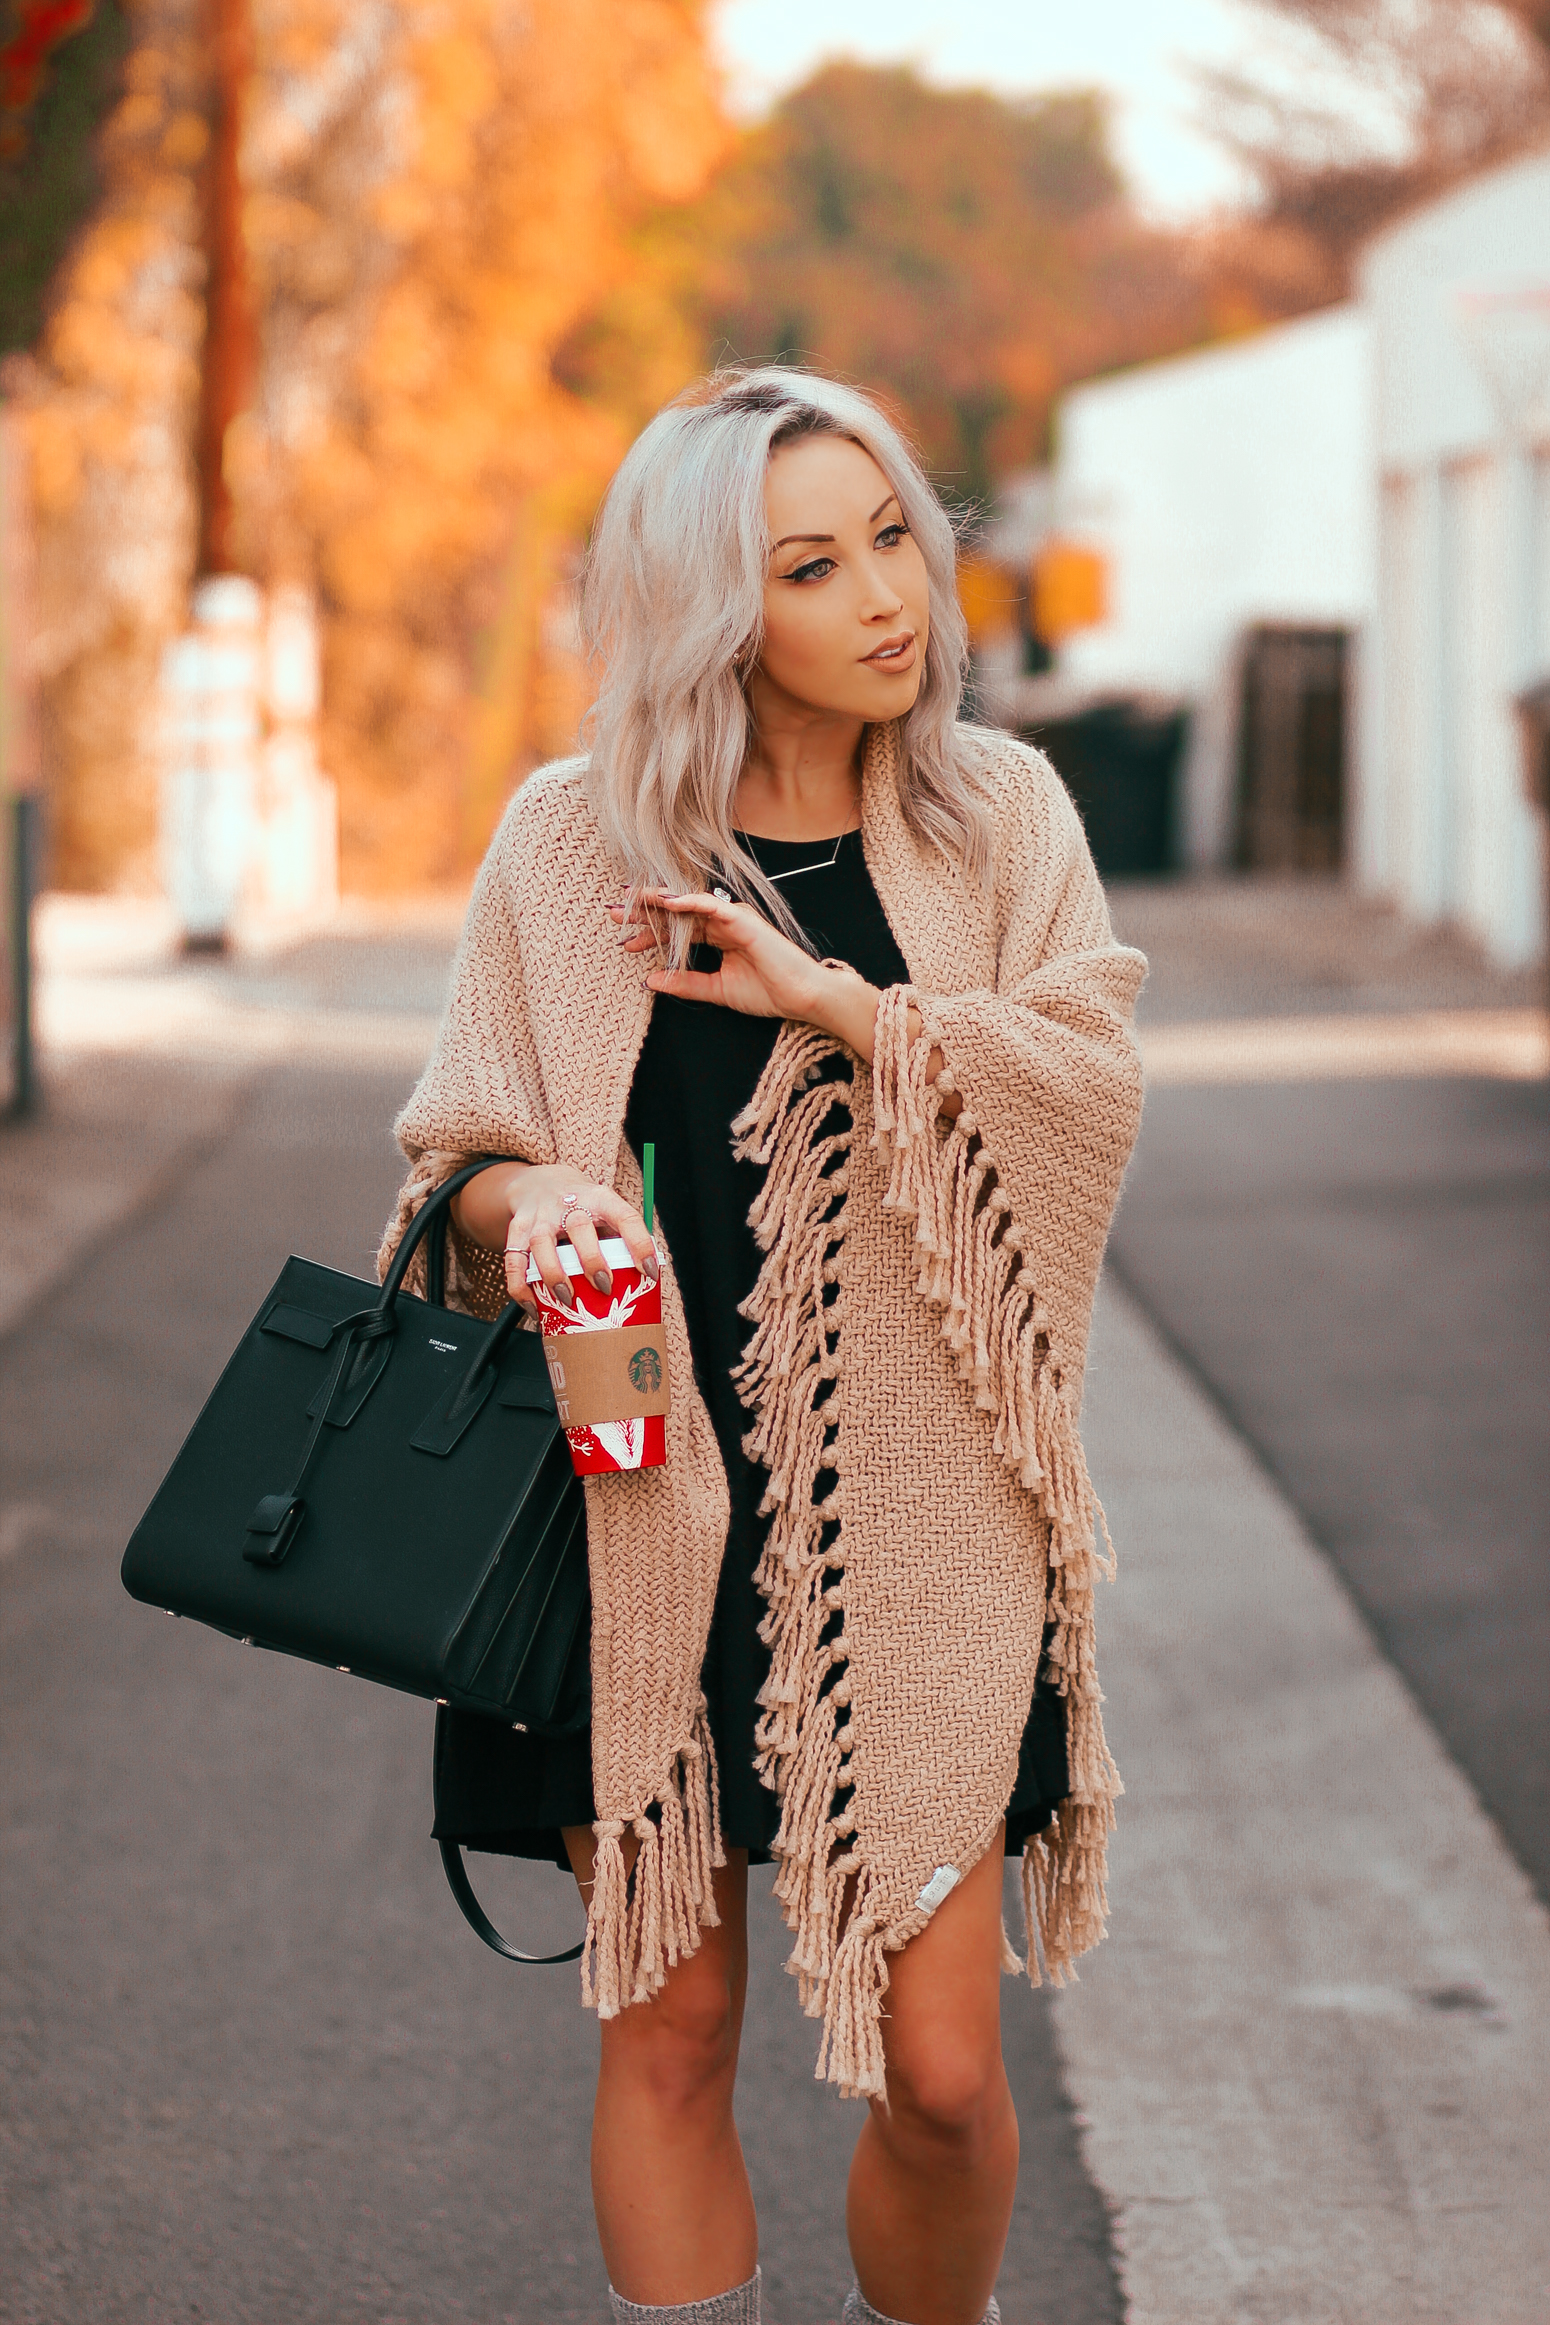 Blondie in the City | Comfy Fall Outfit | Beige Nordstrom Shawl